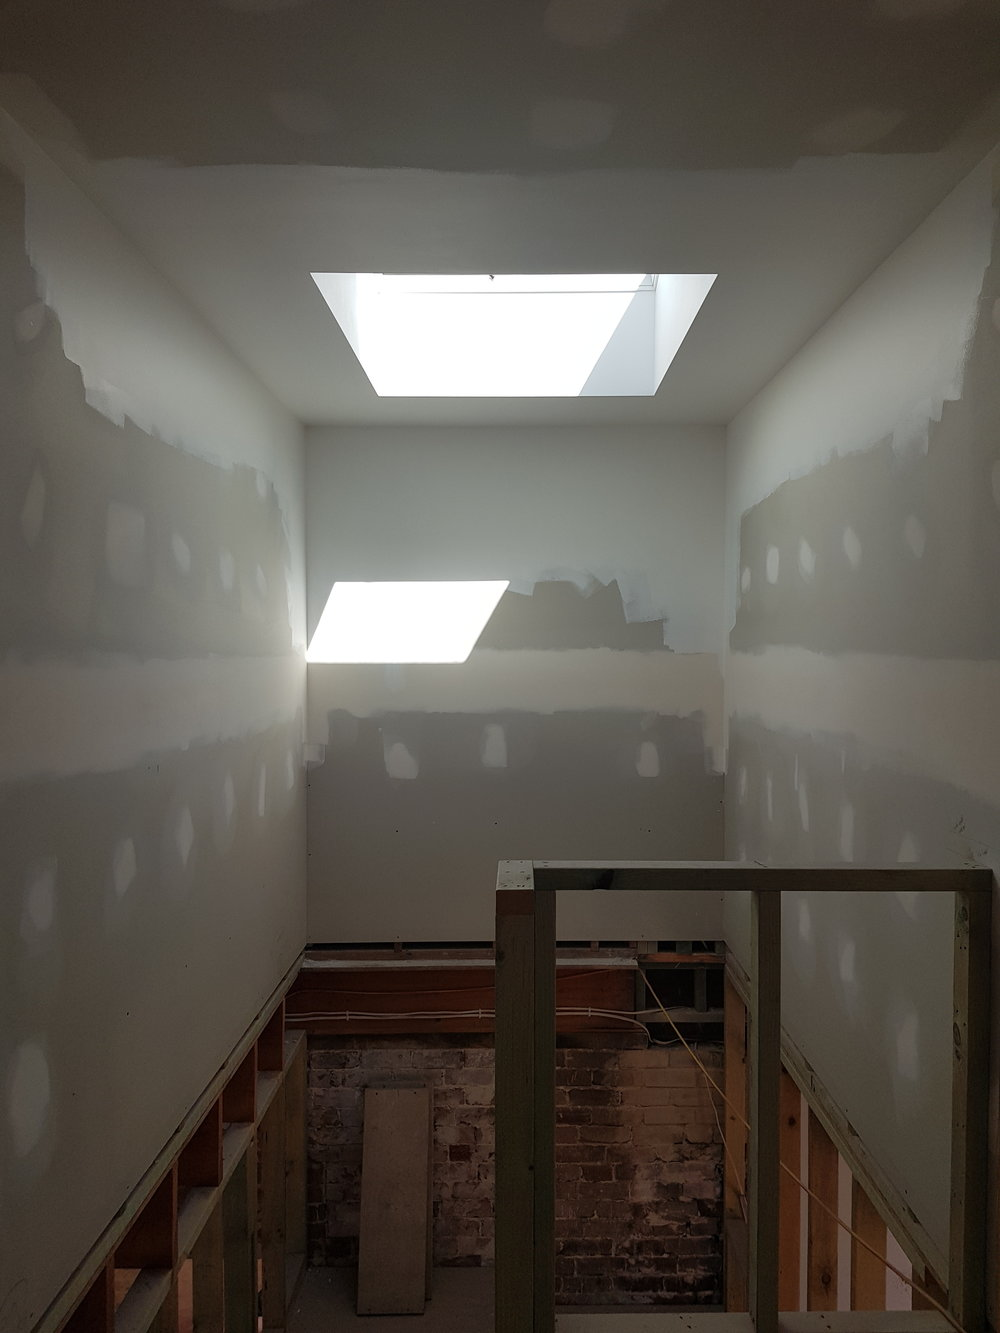 Admiring the light filtering through the new skylight.